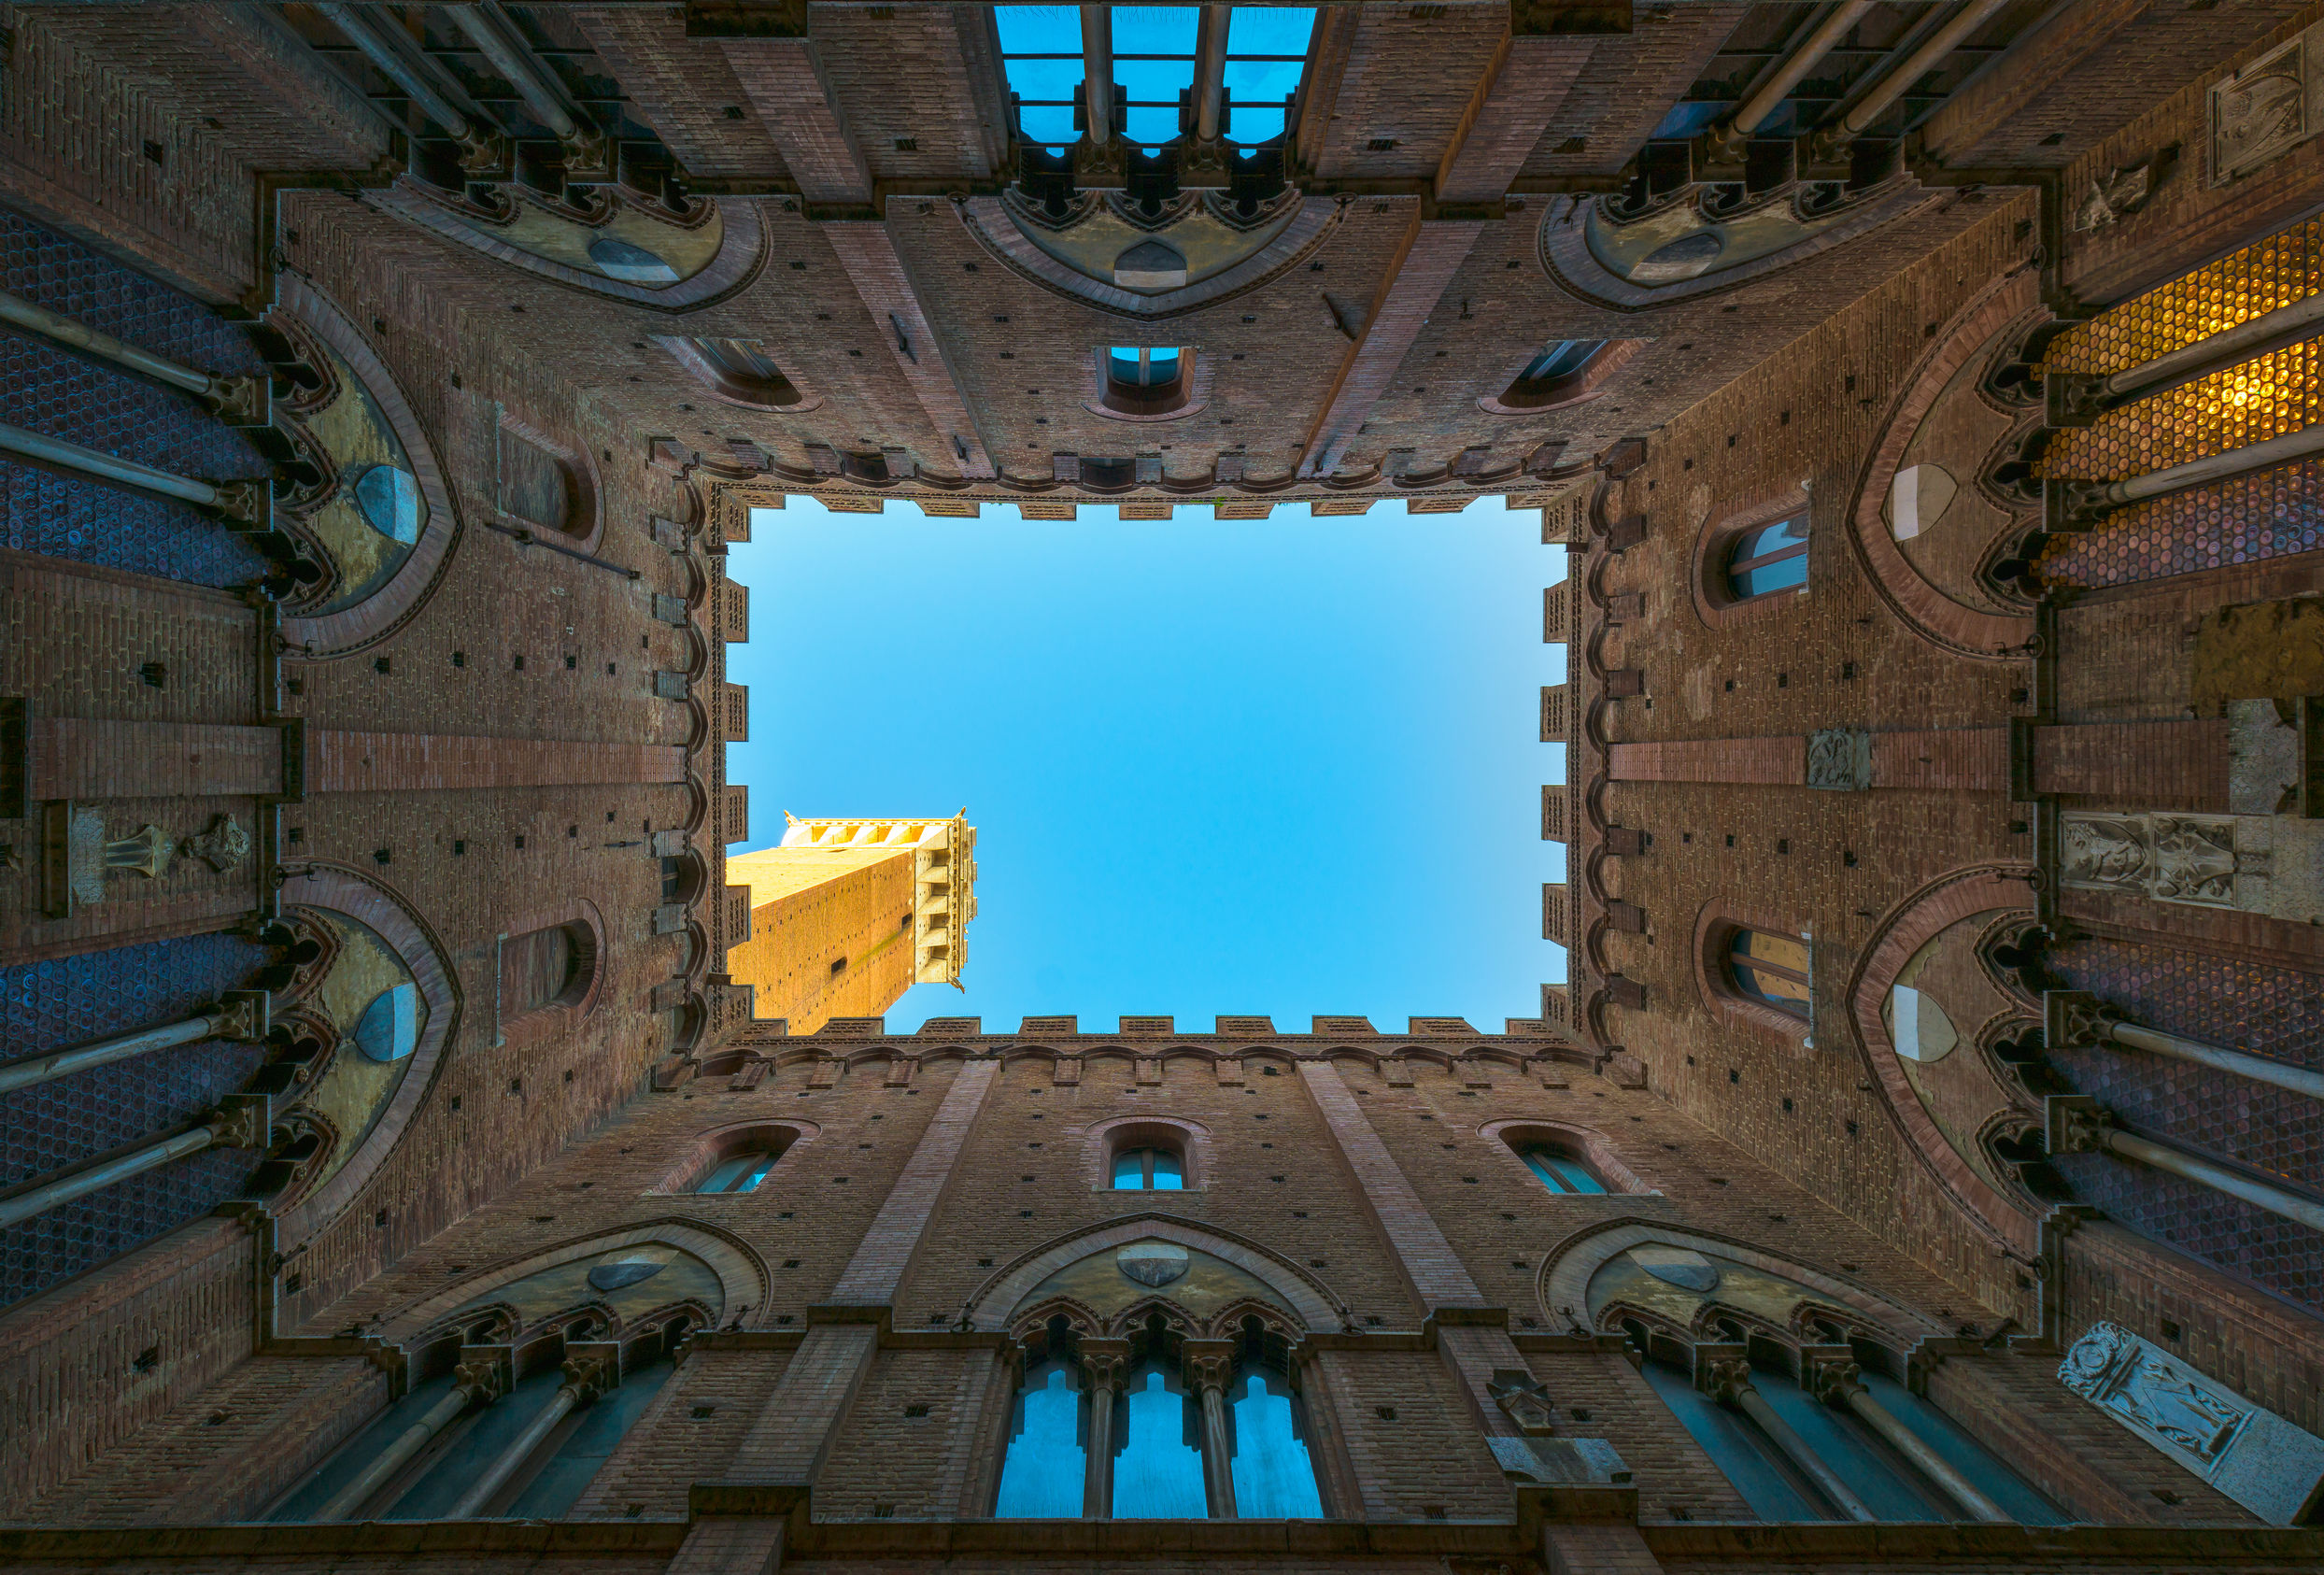 Siena landmark photo. Cortile del Podesta and Mangia tower. Tusc